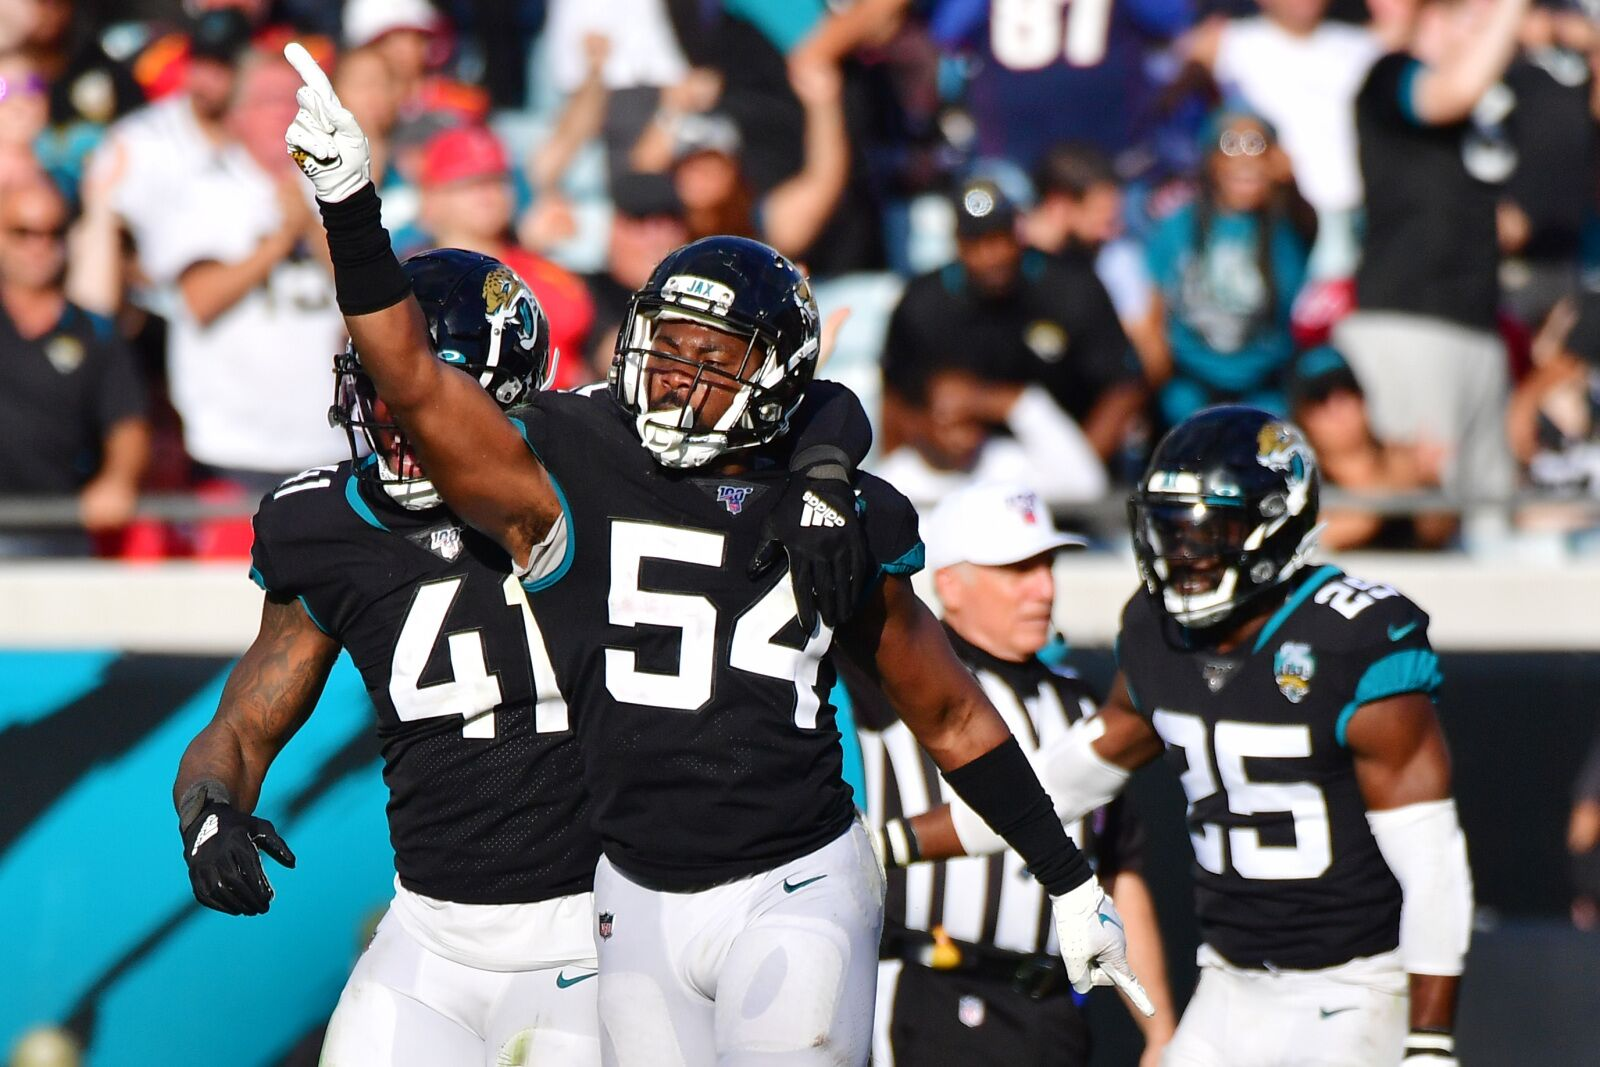 Jaguars to start LB Donald Payne in the middle again on Sunday